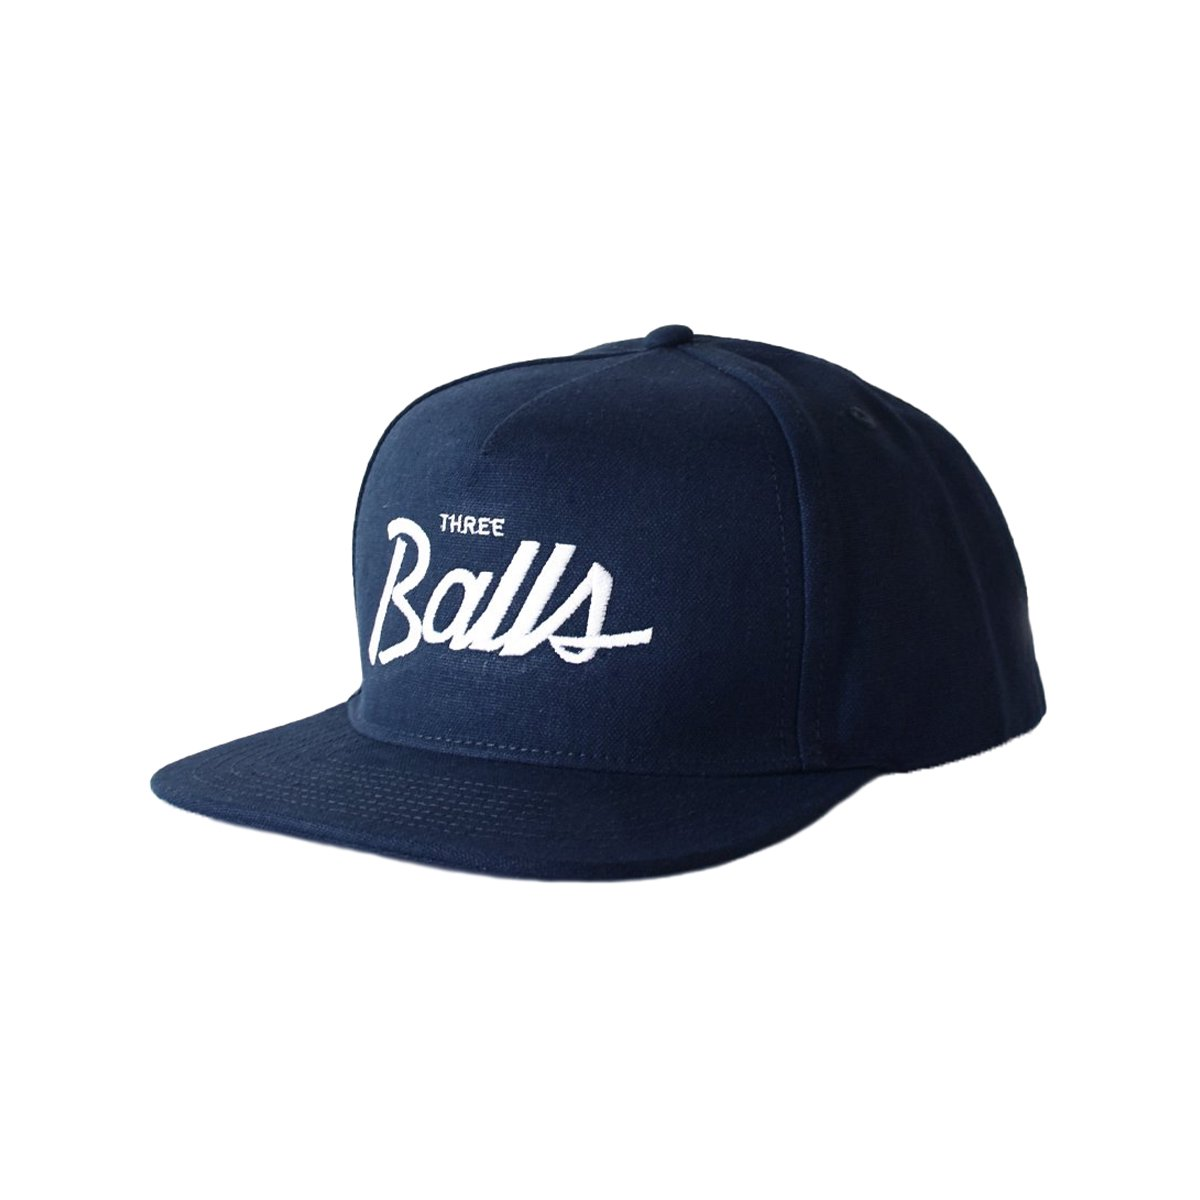 <img class='new_mark_img1' src='https://img.shop-pro.jp/img/new/icons8.gif' style='border:none;display:inline;margin:0px;padding:0px;width:auto;' />【LIEON SHARE】Three Balls Snapback #1 (Navy)                           </a>             <span class=